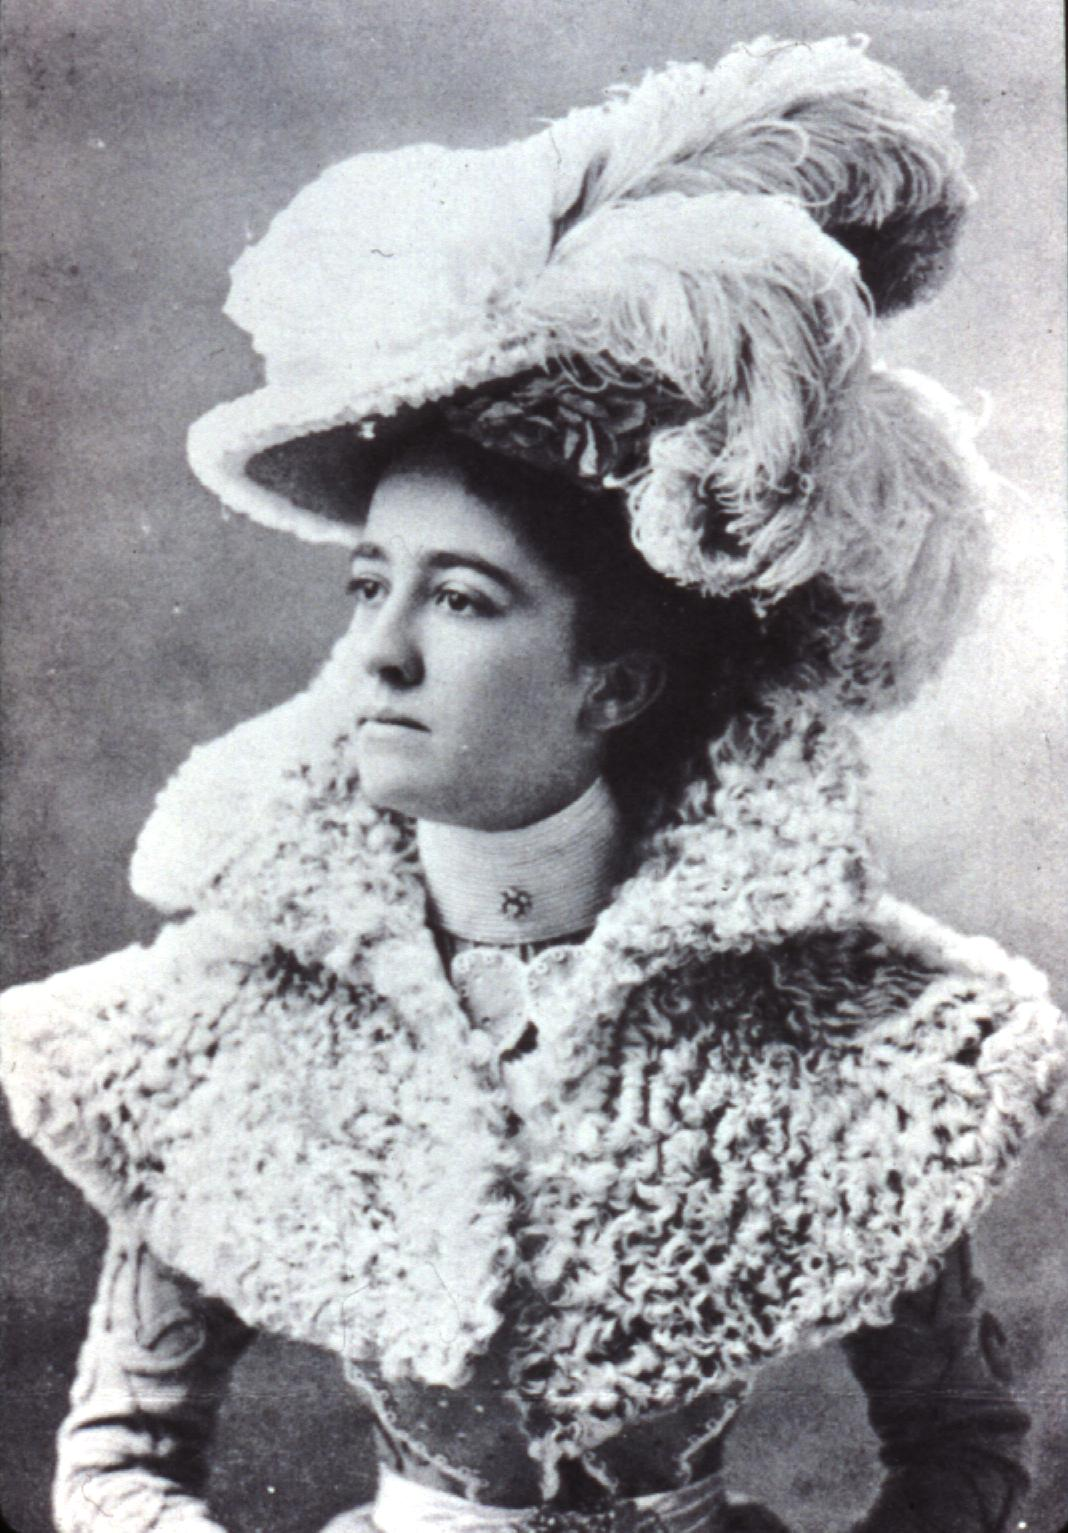 vintage photo of a woman in a hat with plumee